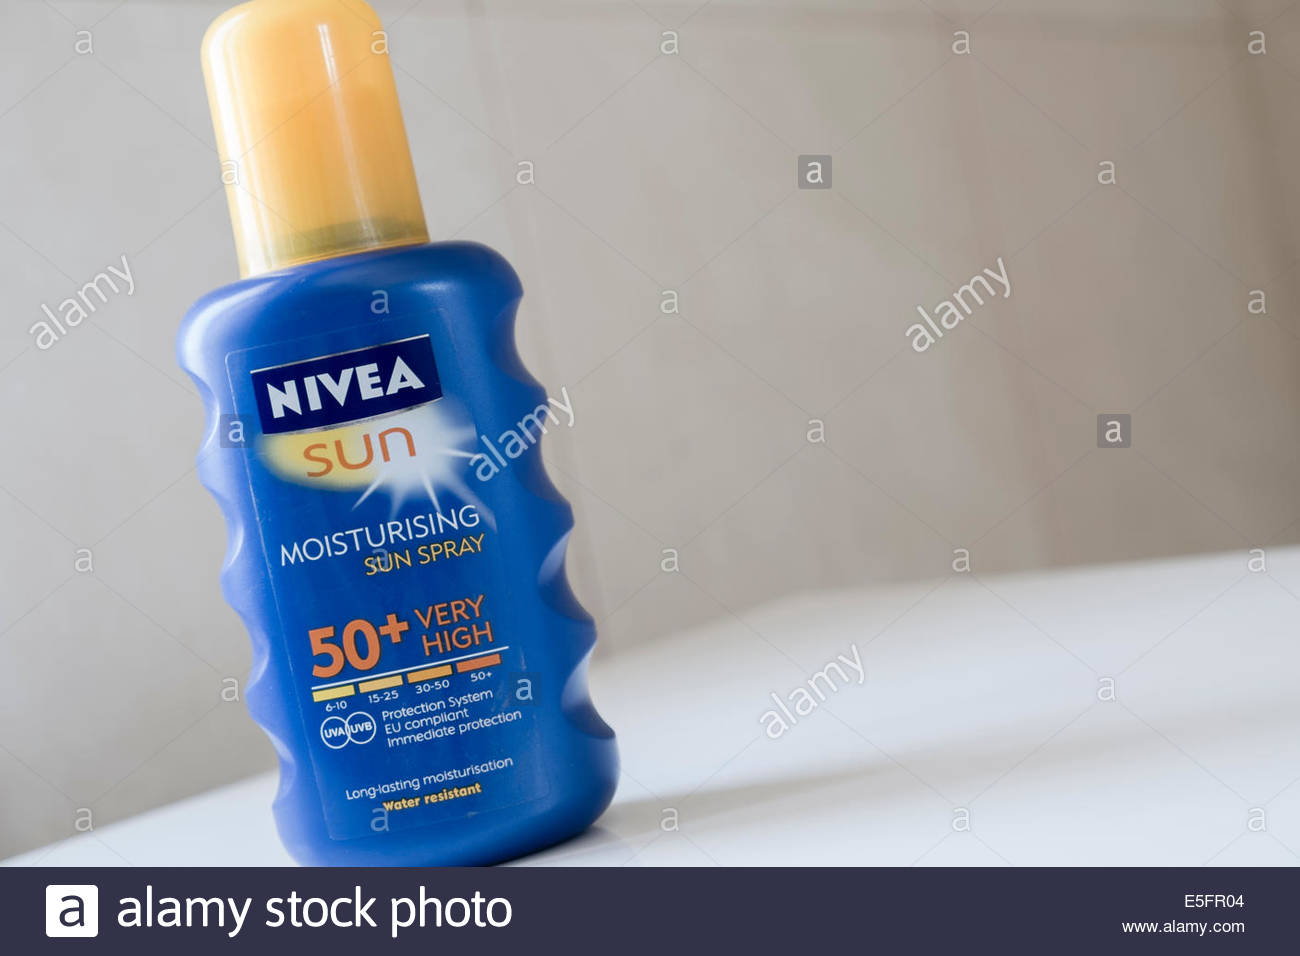 bottle of Nivea 50+ sun screen - Stock Image